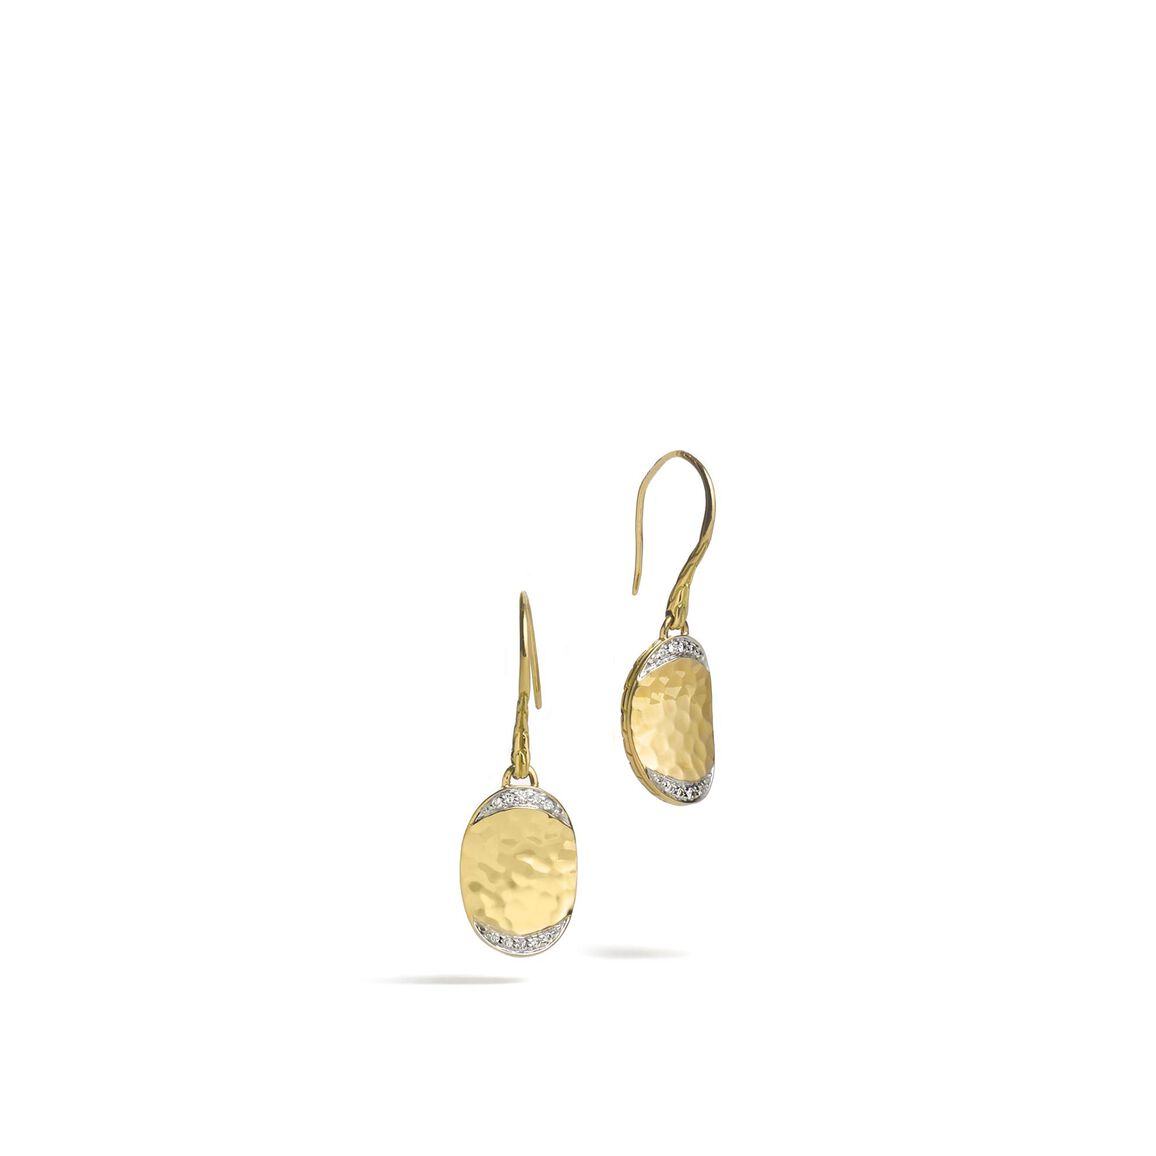 Classic Chain Small Drop Earring, Hammered 18K, Diamonds